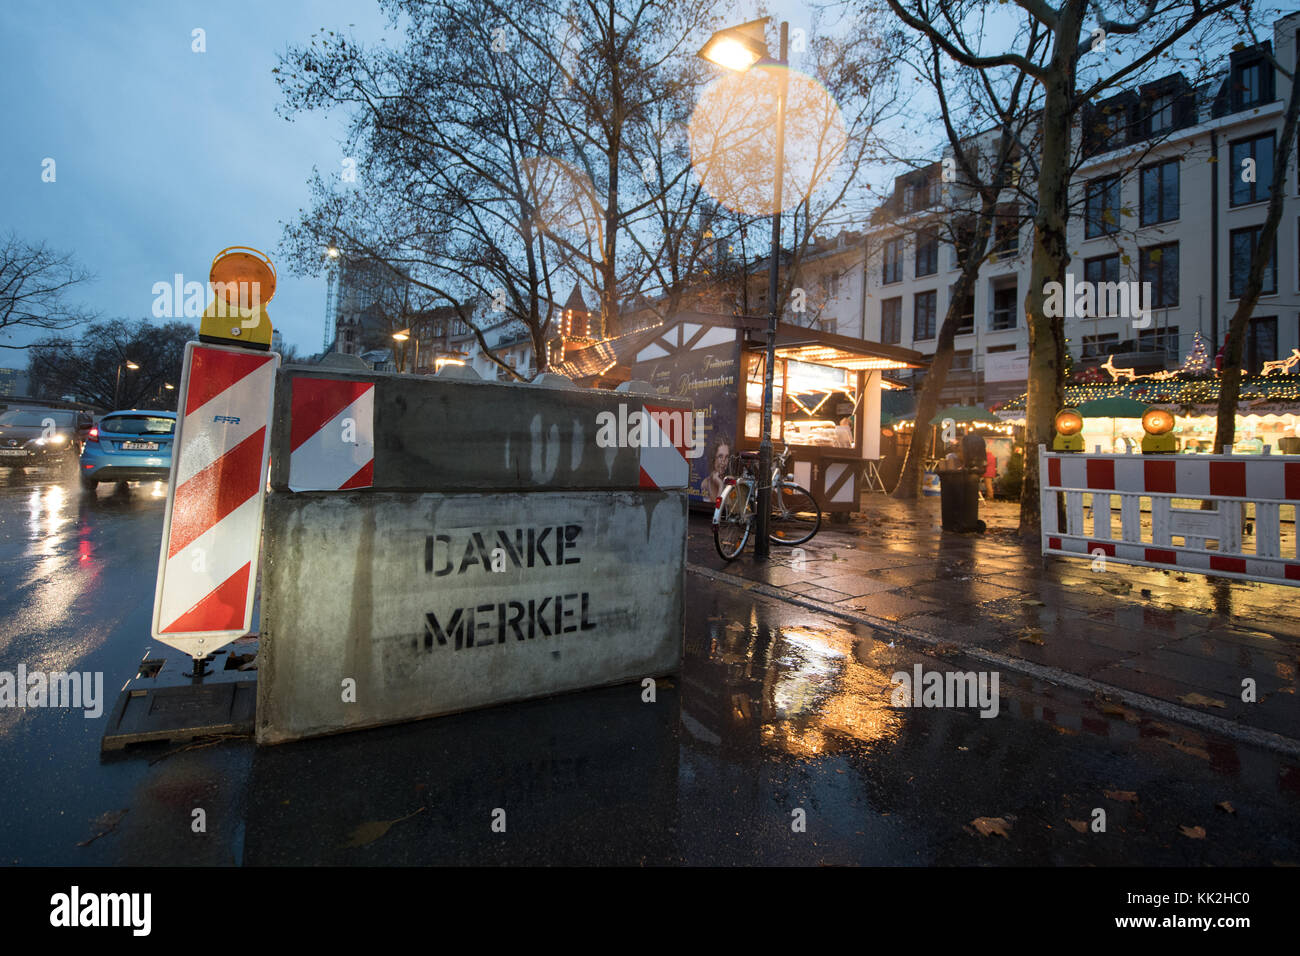 Frankfurt am Main, Germany. 27th Nov, 2017. A Delineation bollard with a graffiti reading 'thank you Merkel' - Stock Image